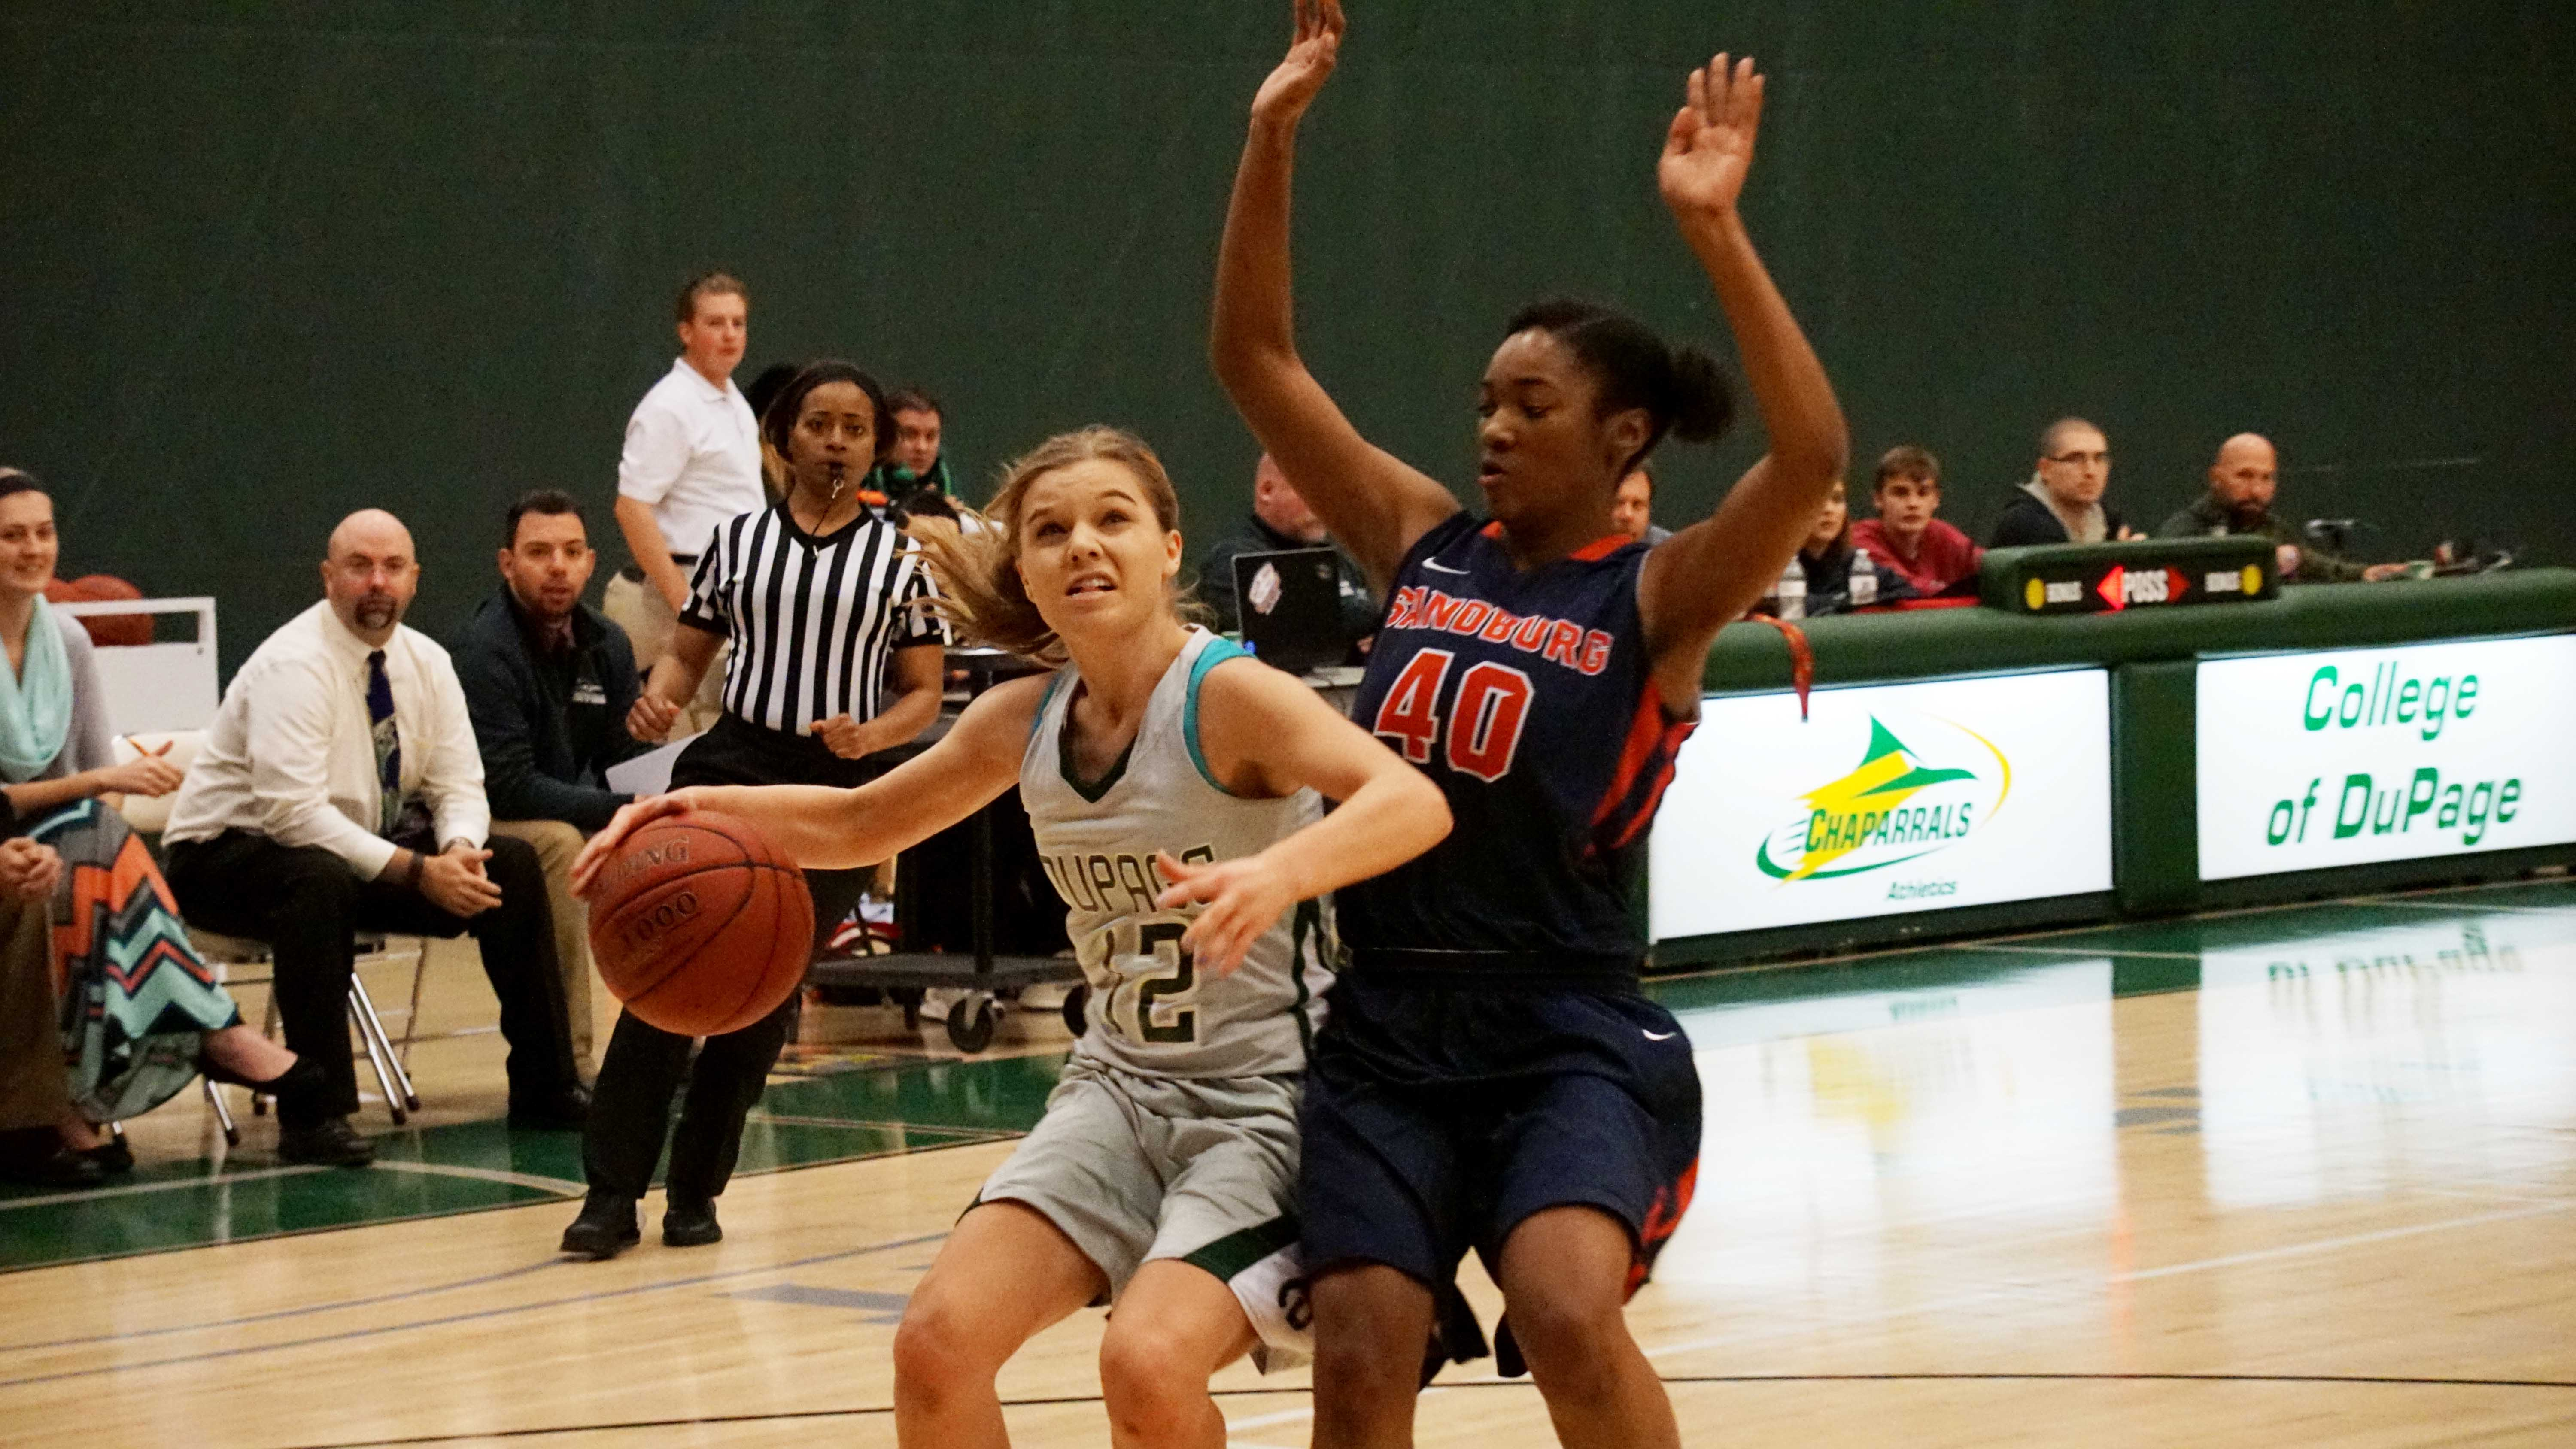 Chaparral guard #12 Elinor Cycenas challenges Carl Sandburg player in a match at the College of DuPage on Nov. 28.